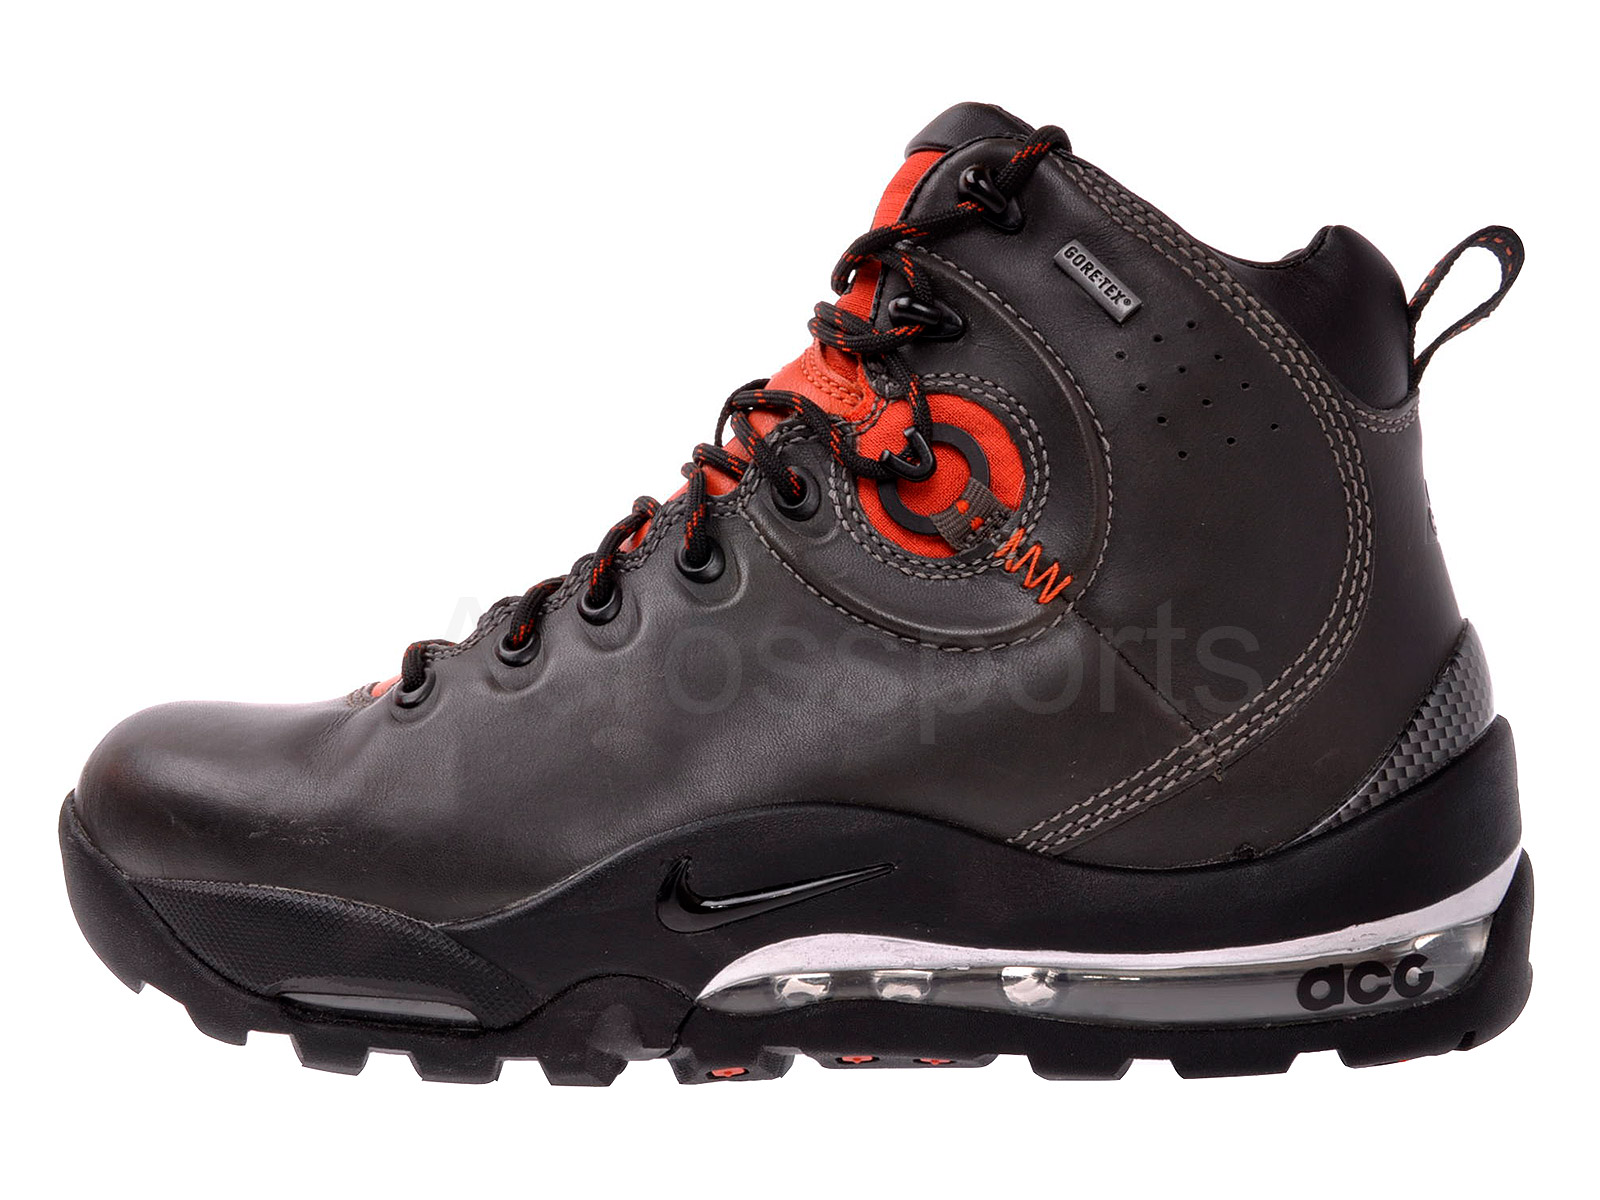 nike air acg hiking boots Black Friday 2016 Deals Sales & Cyber ...